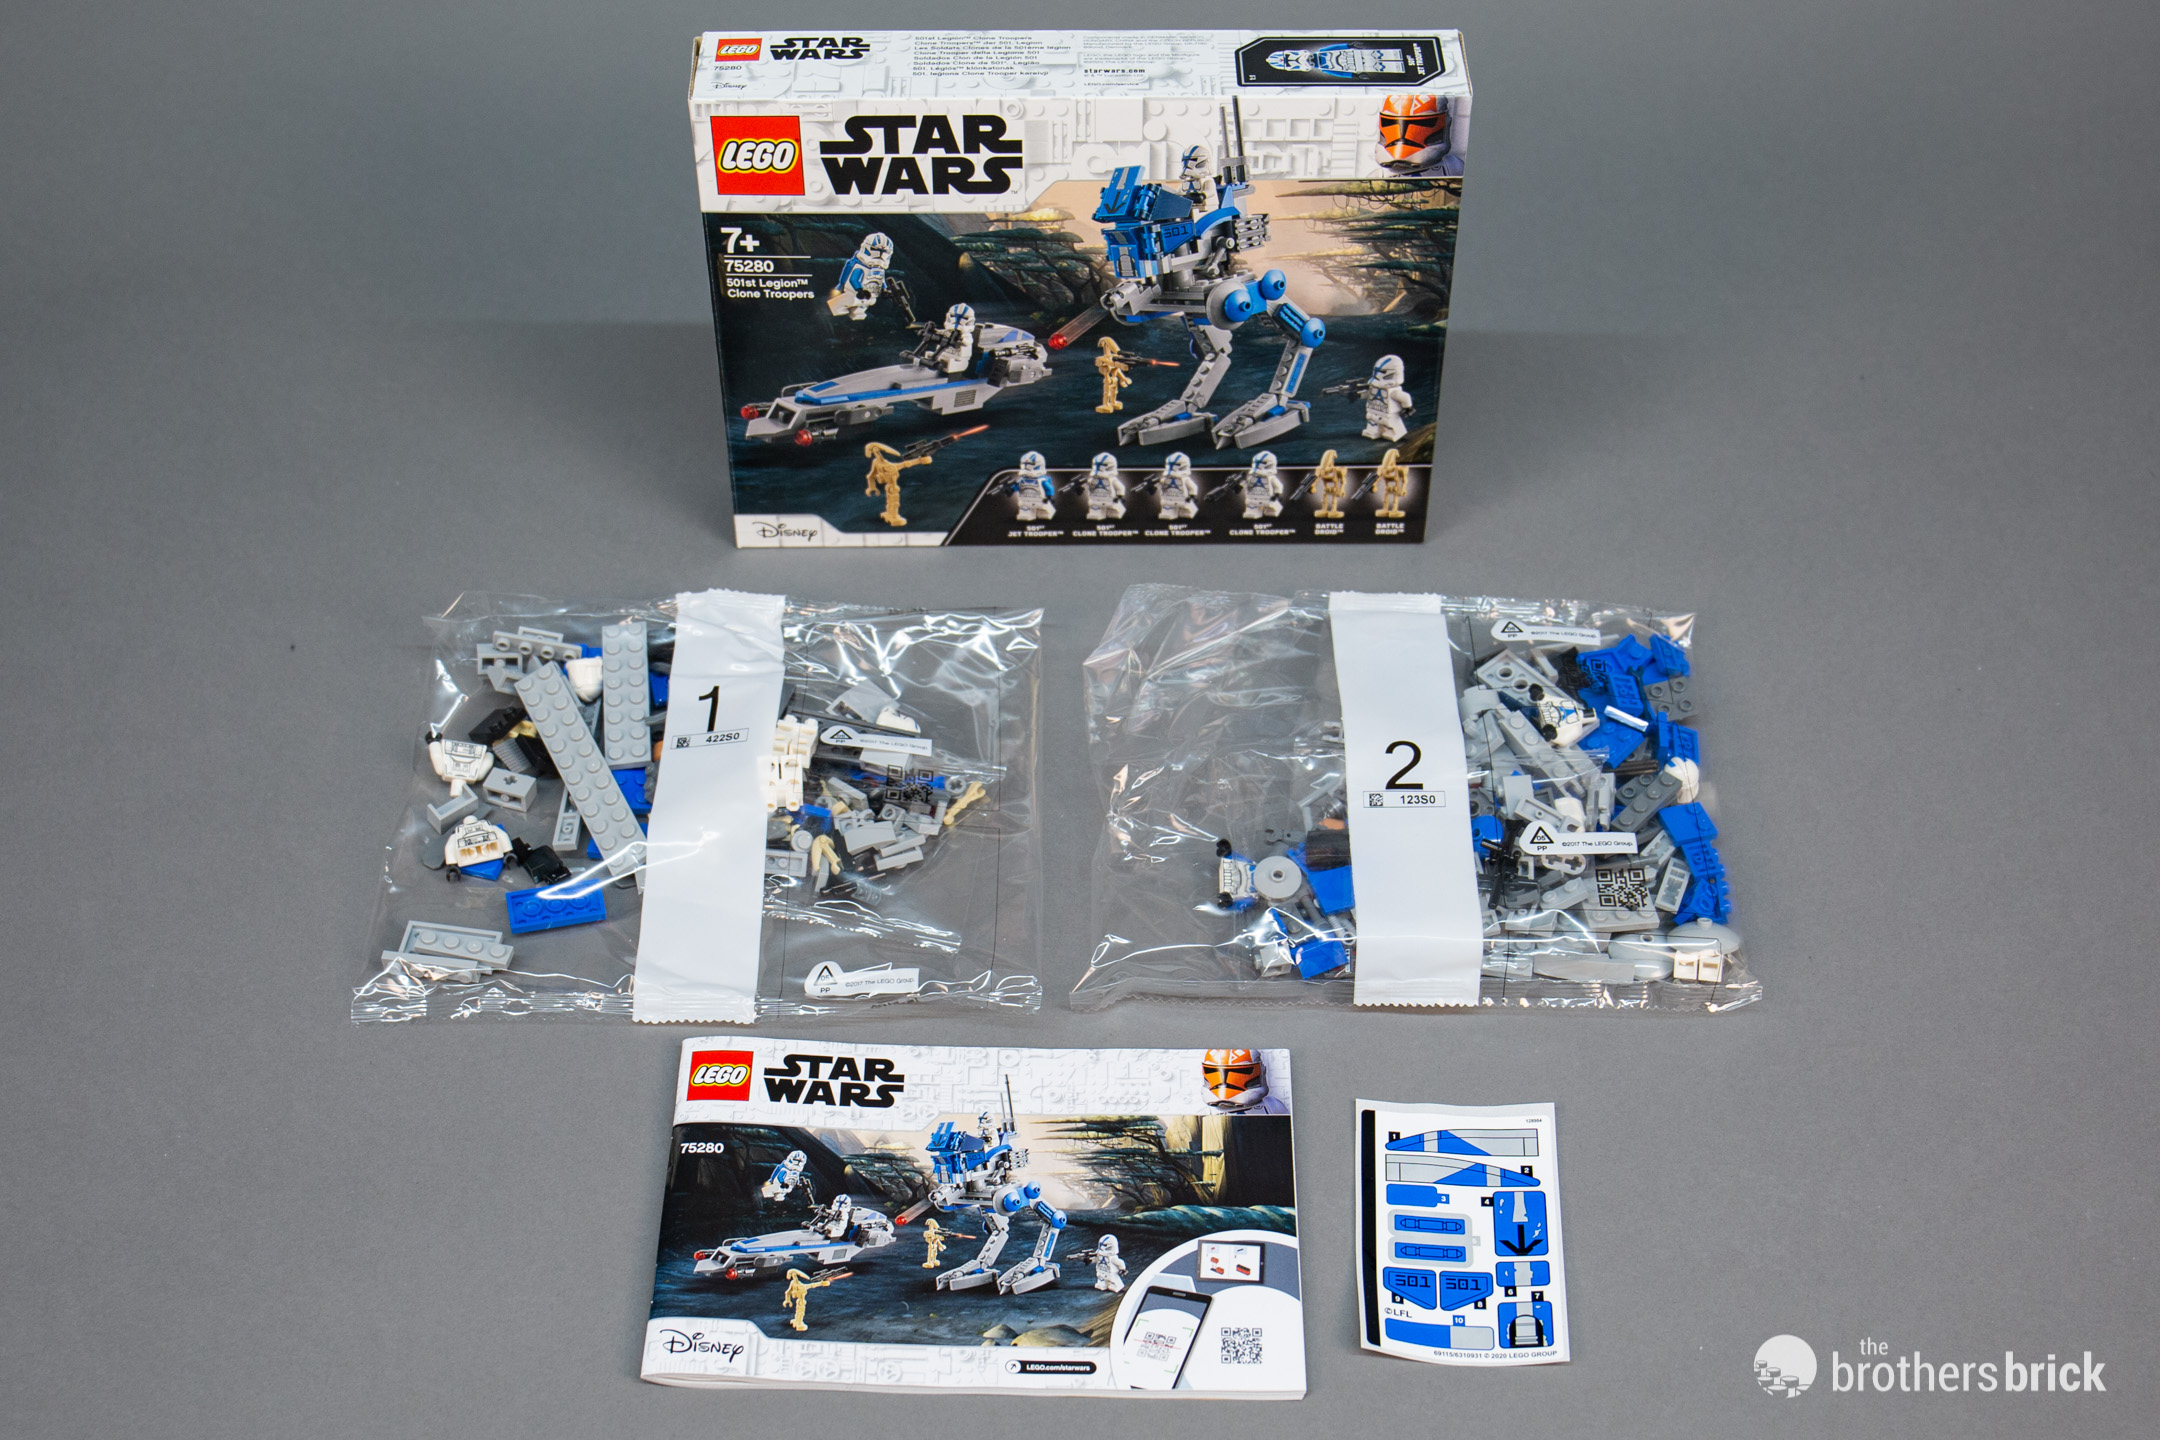 Lego Star Wars 75280 501st Legion Clone Troopers With At Rt Barc Speeder Review The Brothers Brick The Brothers Brick